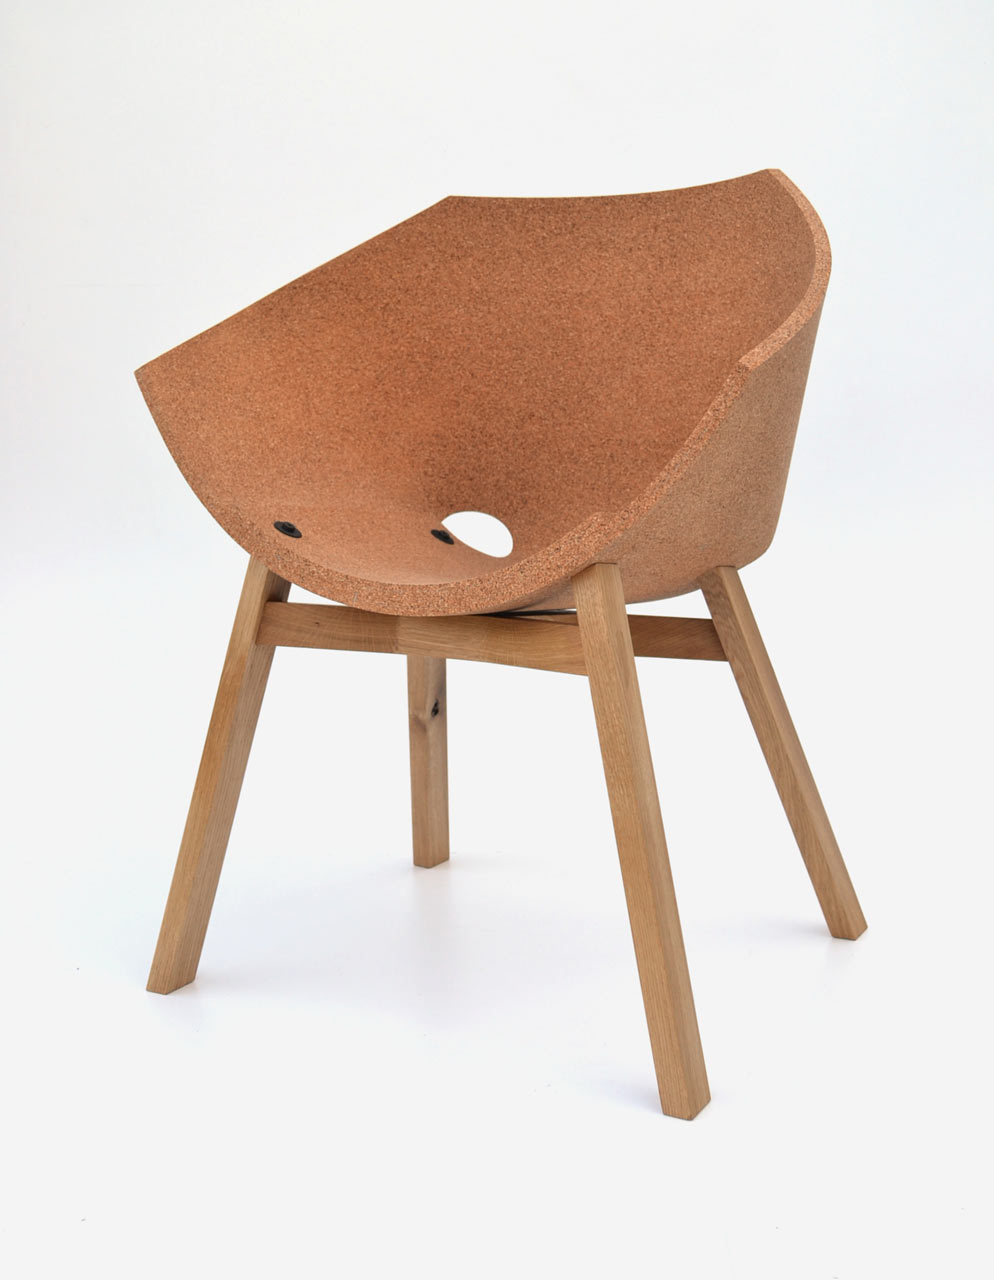 Corkigami-Chair-Carlos-Ortega-Design-5